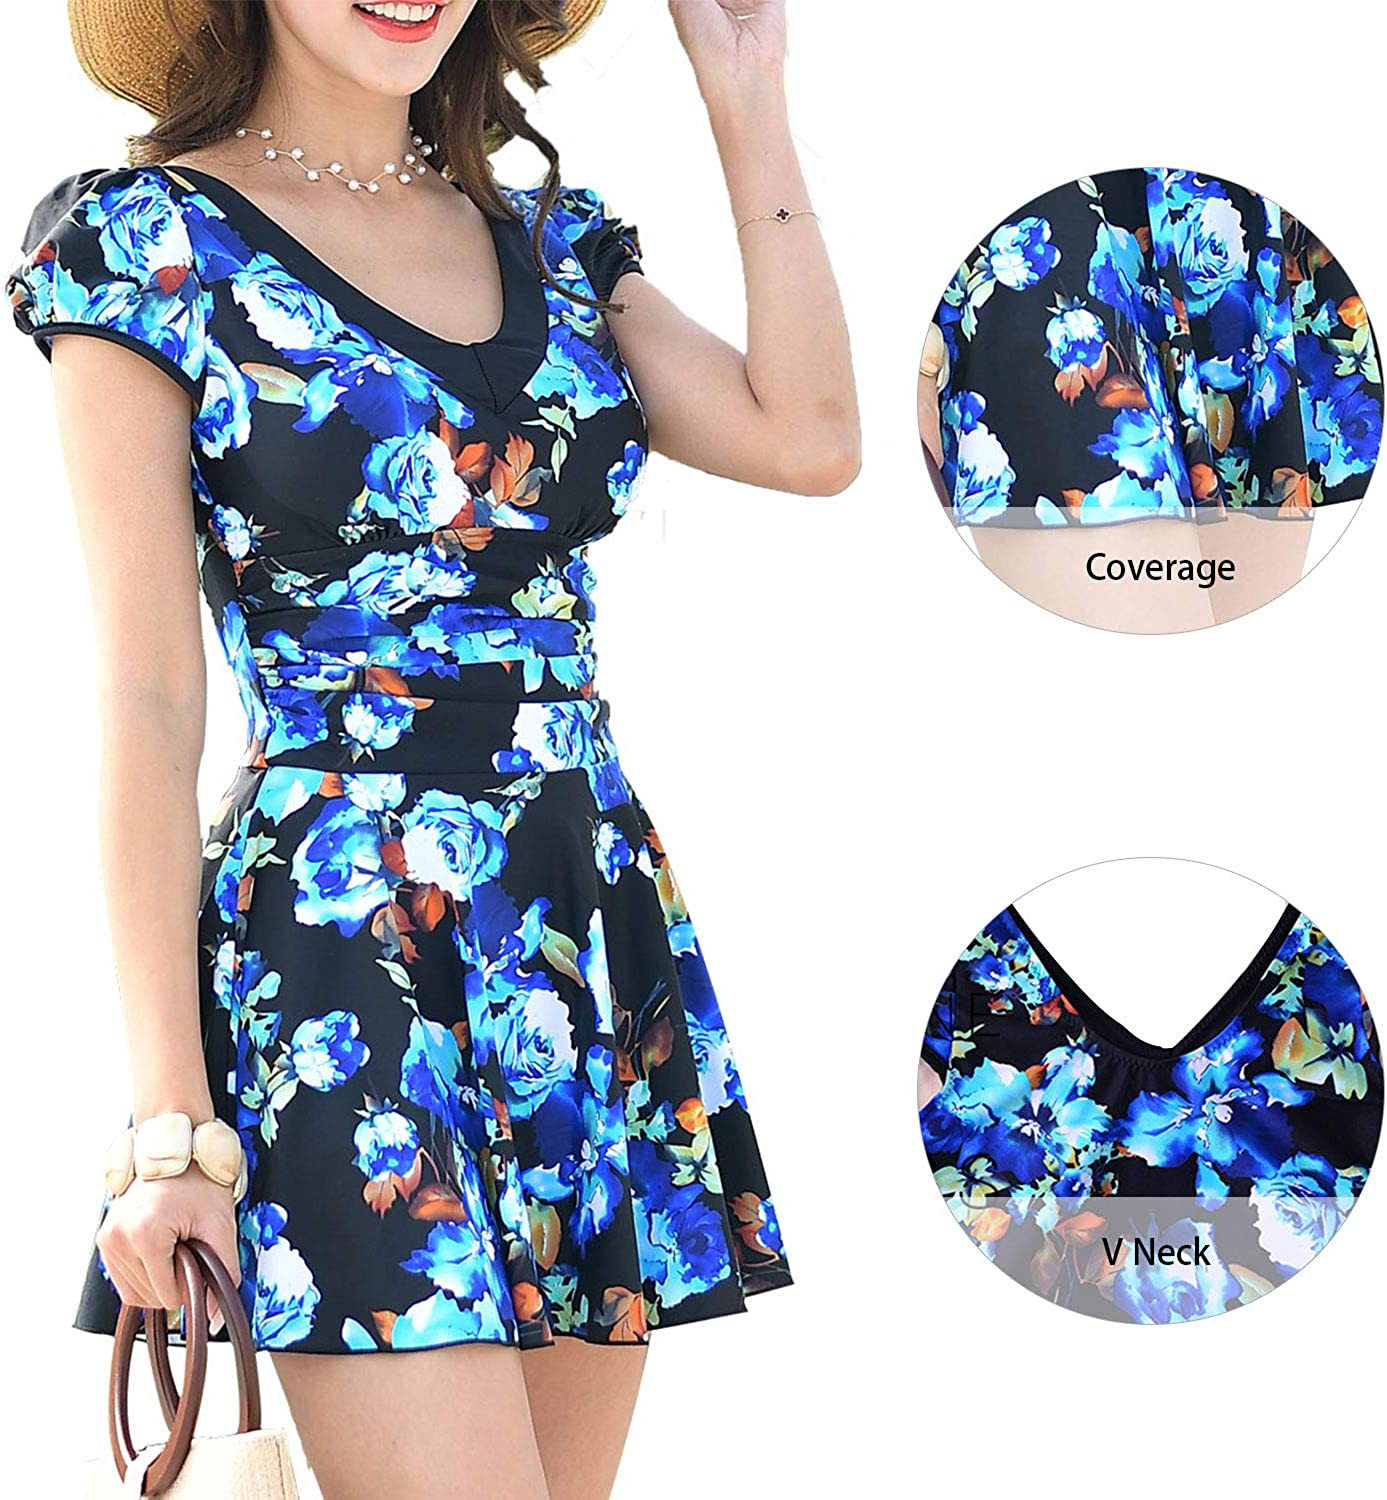 Ecupper Womens Floral Printed Swimdsuit V Neck Swimwear Bathing Suit with Short Sleeve